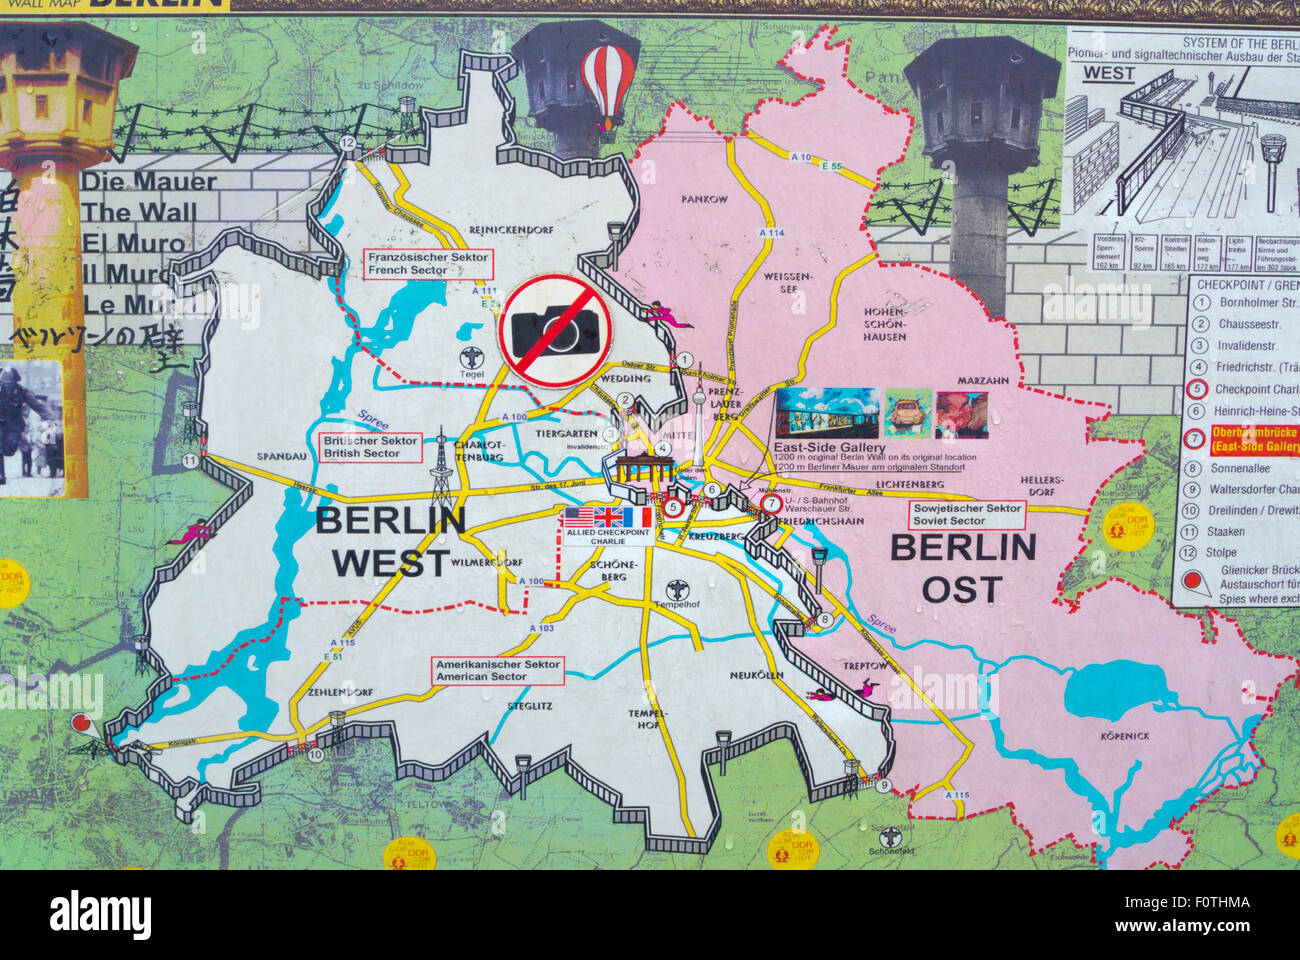 Map showing East and West Berlin before 1990, East Side Gallery, Friedrichshain, east Berlin, Germany Stock Photo